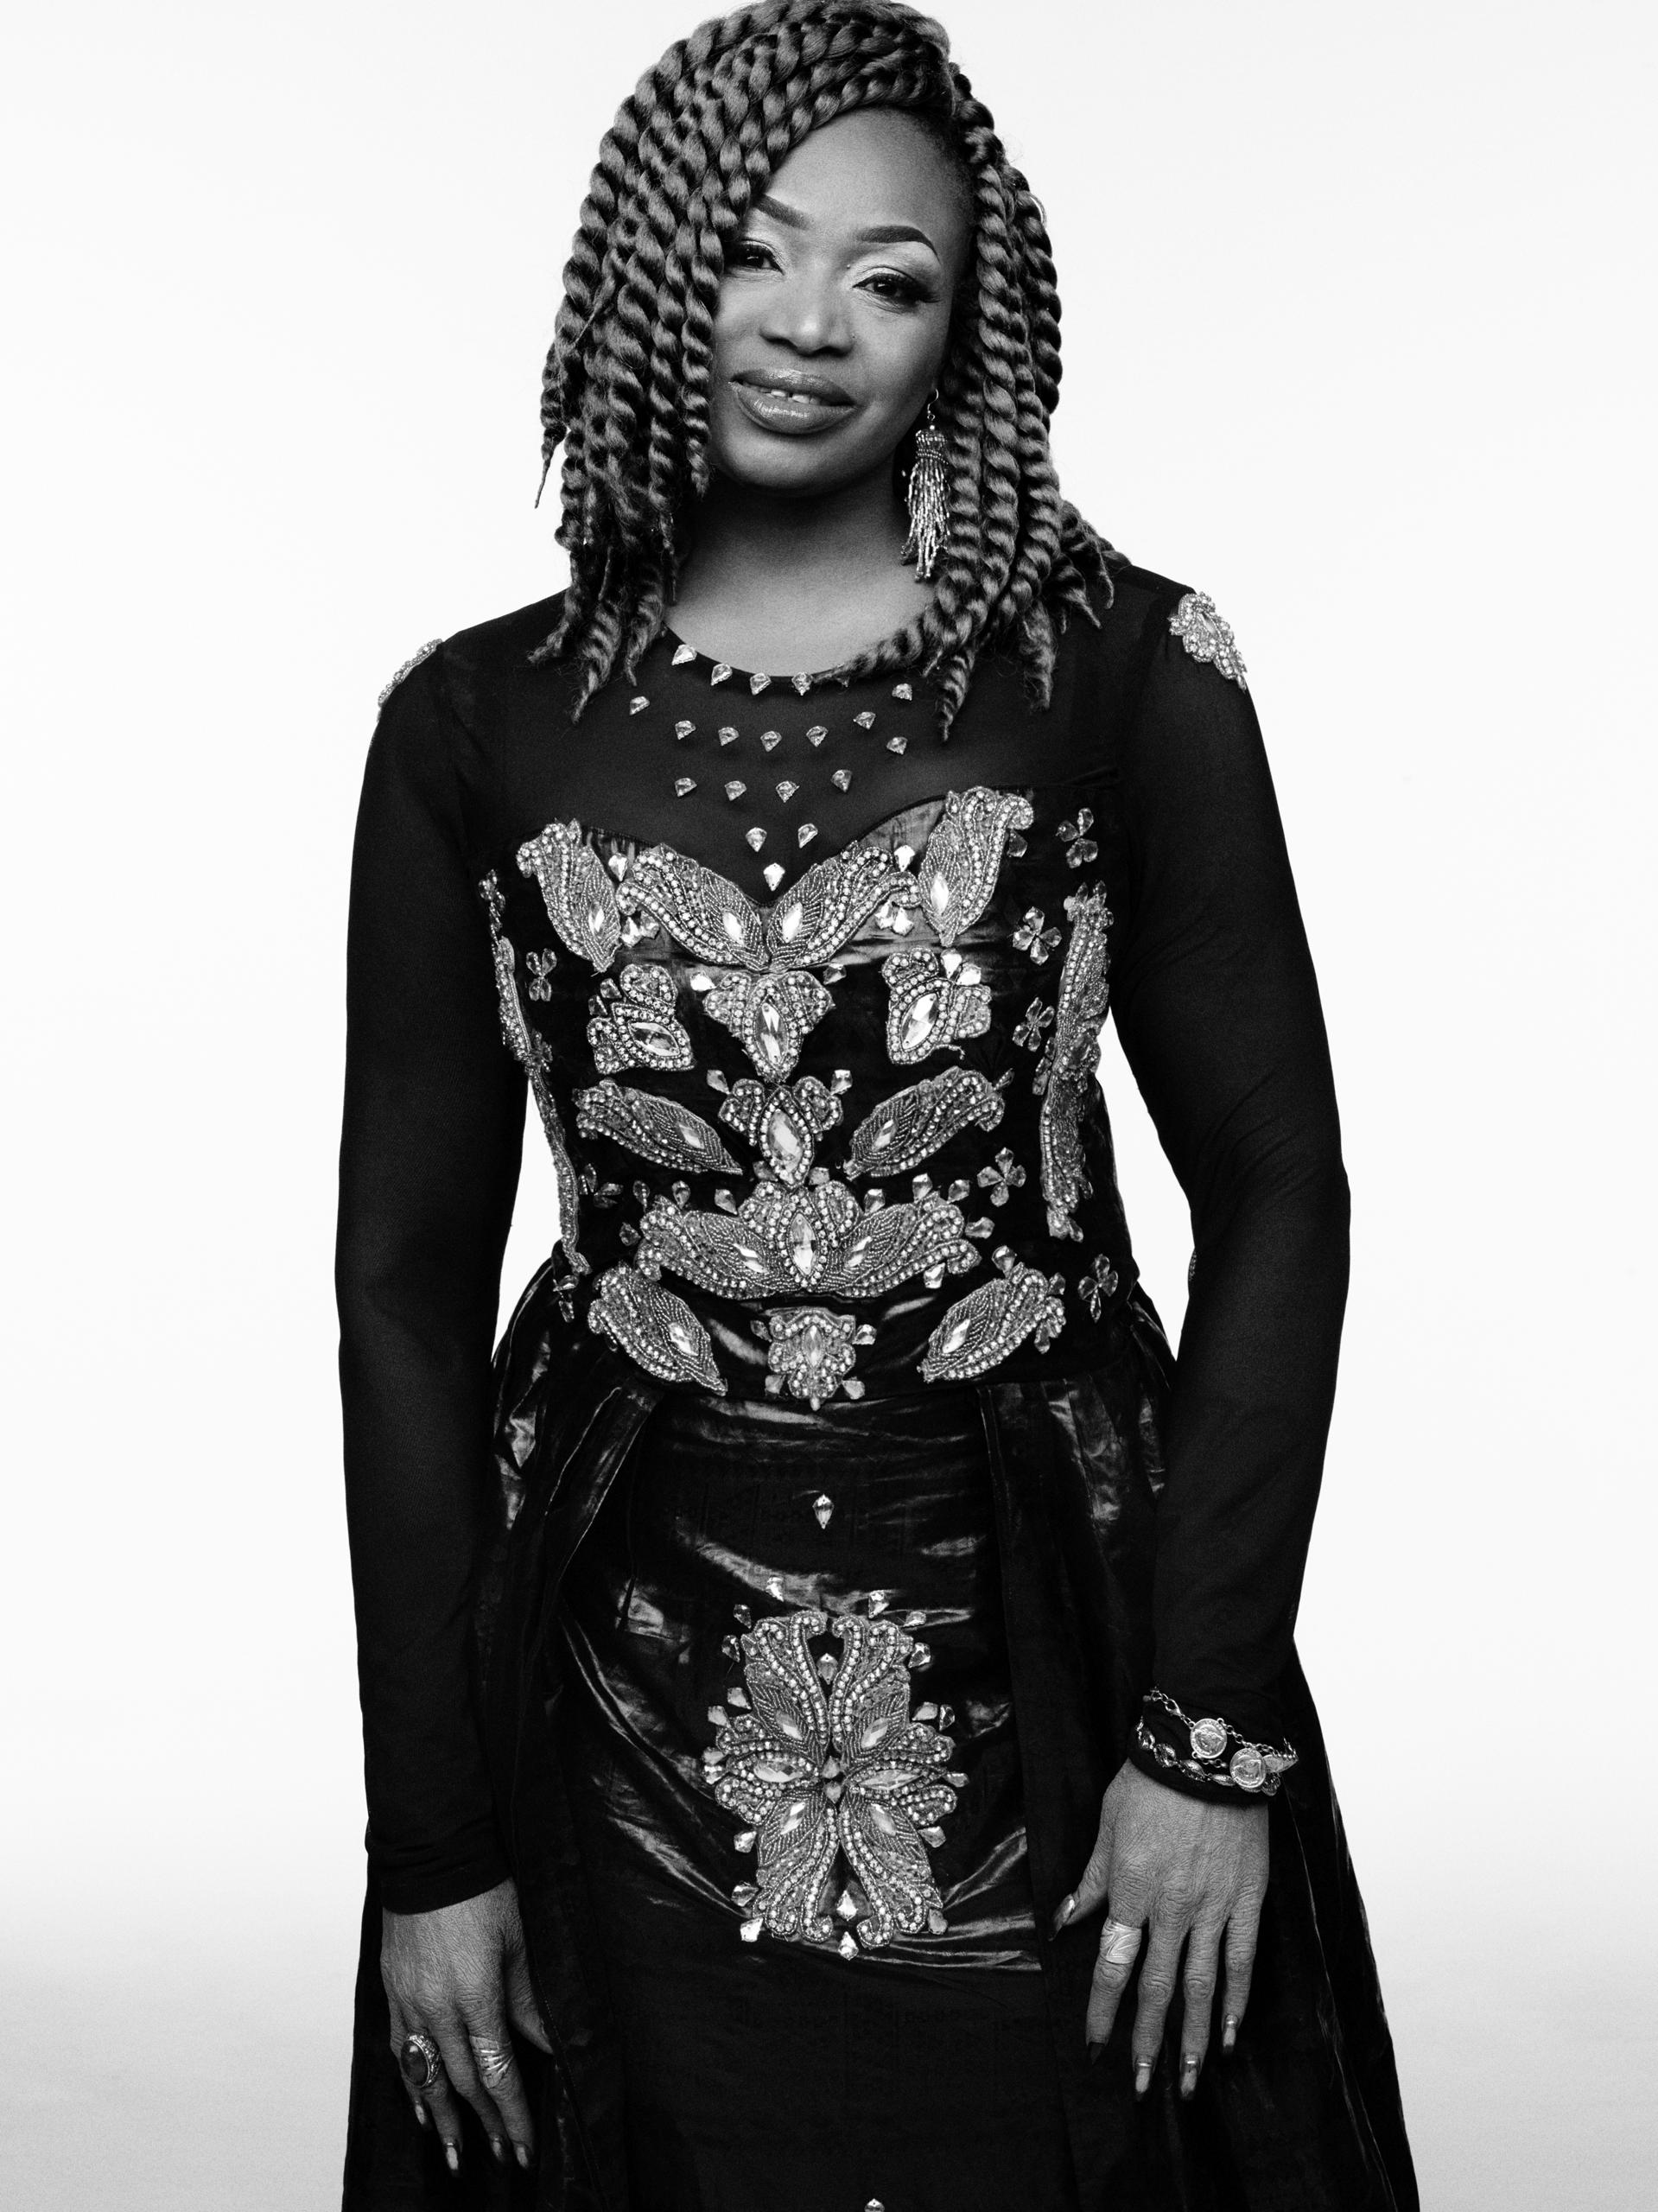 oumou-black-and-white-small-credit-benoit-peverelli-0000